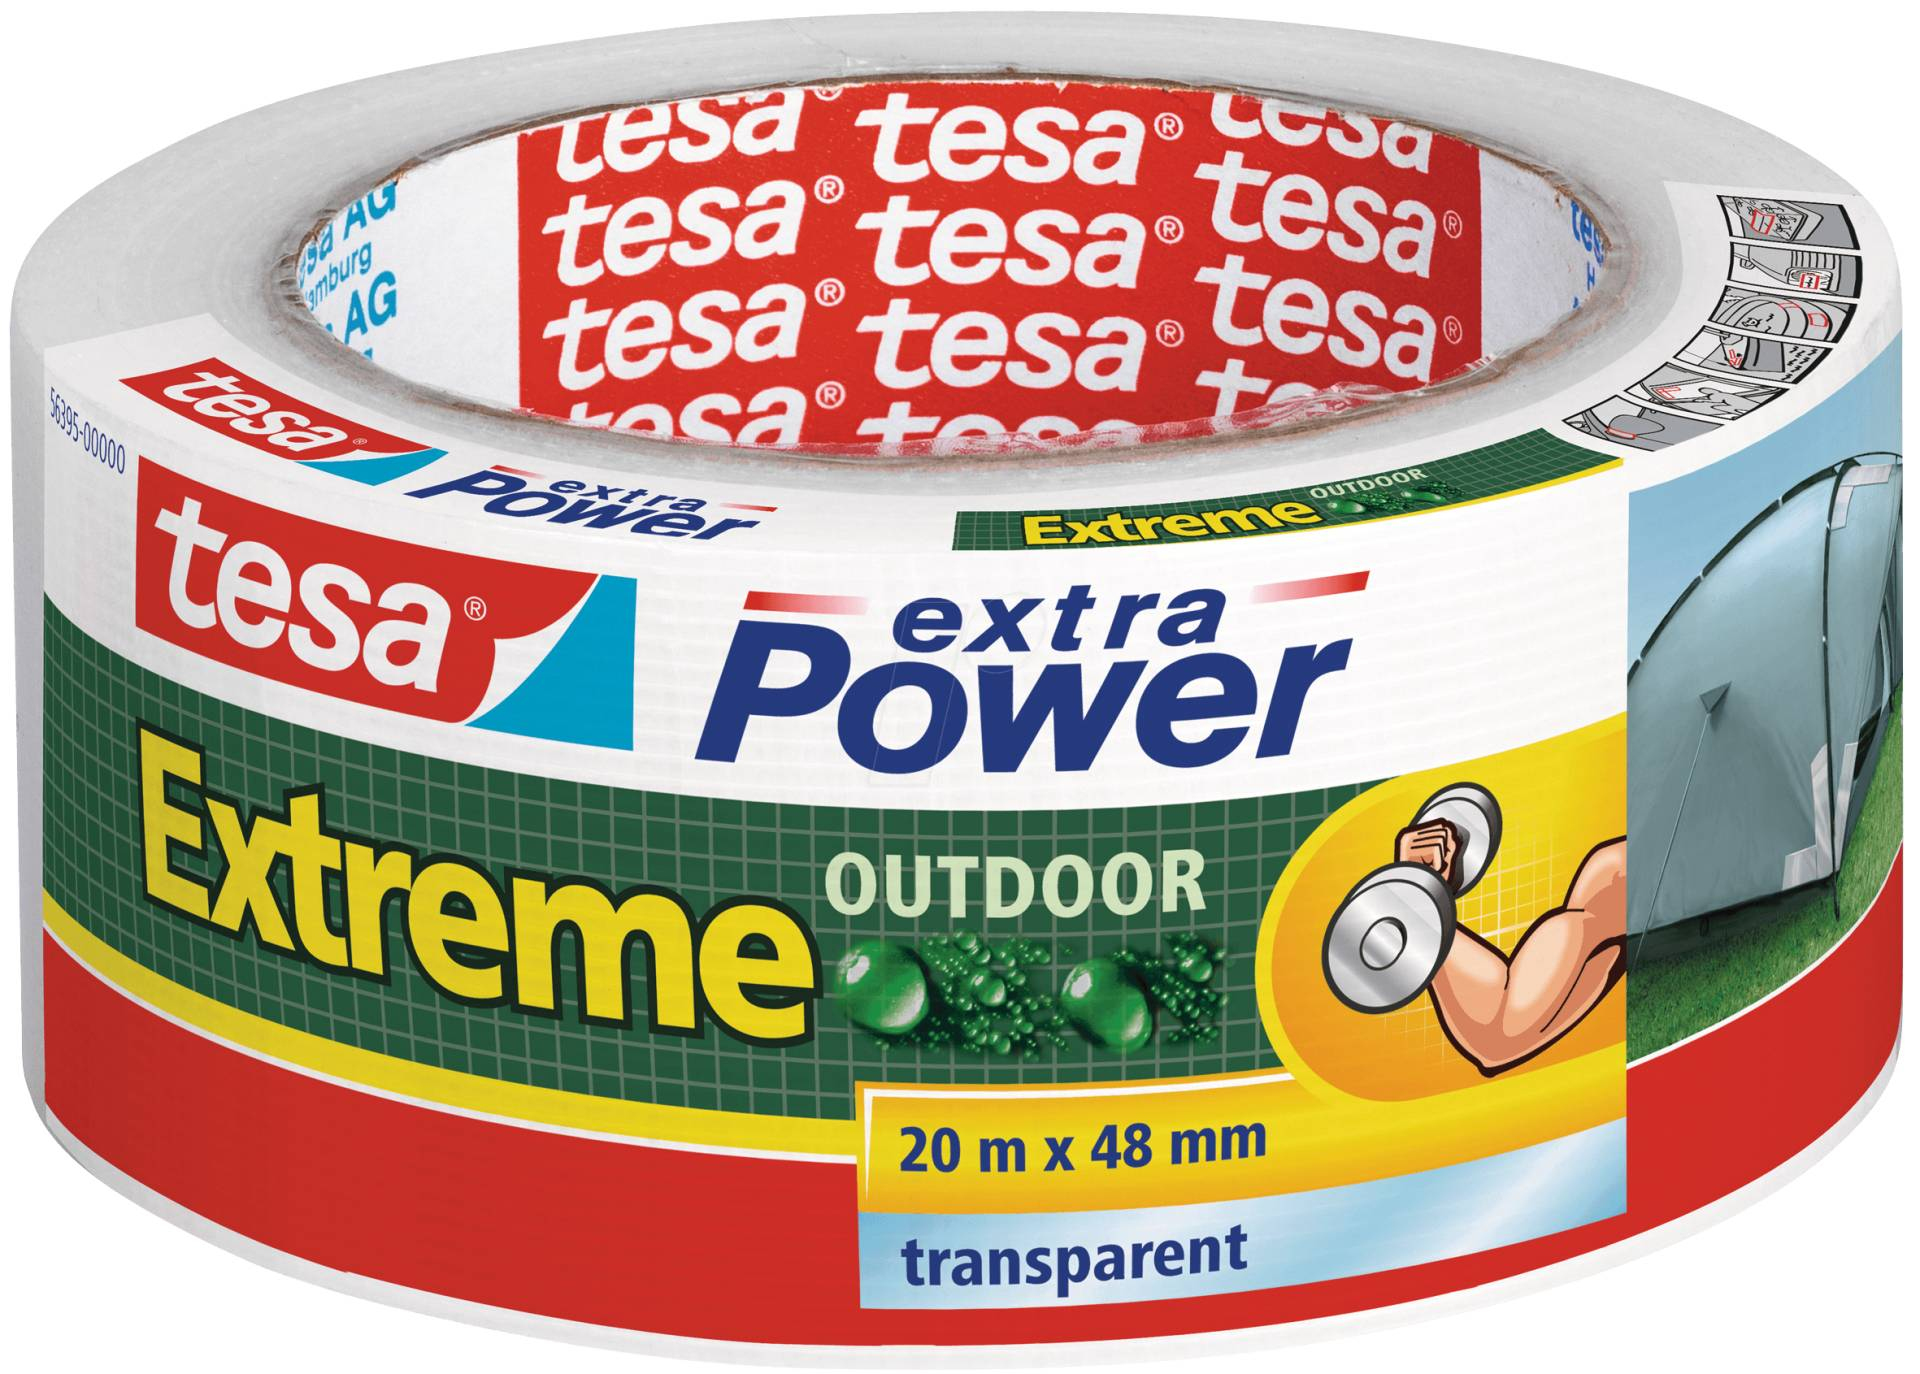 TESA 56395 - Folienband tesa extra Power® Extreme Outdoor, 20 m x 48 mm von Tesa